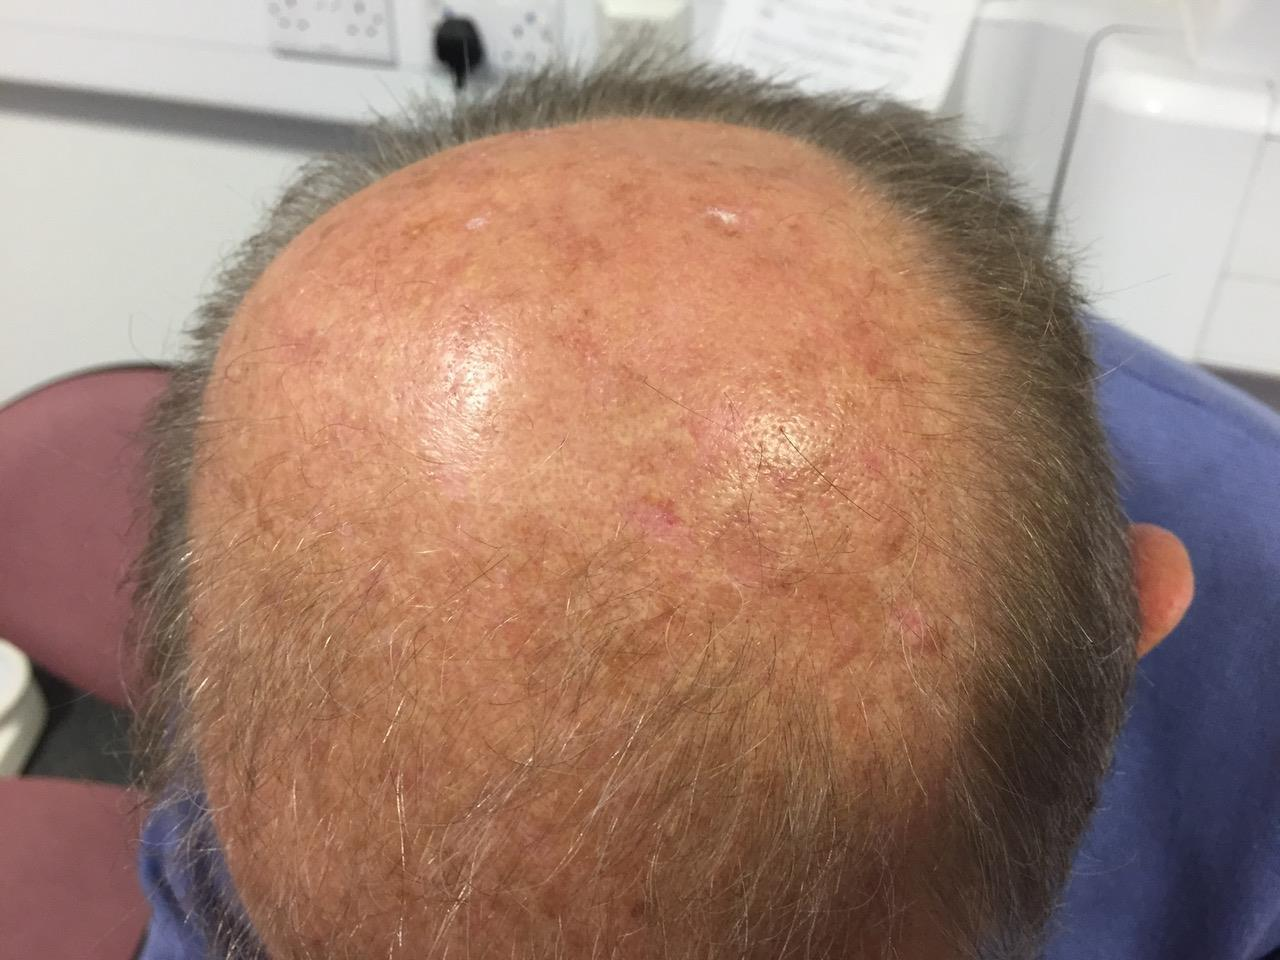 Most Actinic Keratosis Can Be Managed With Topical Treatments Implementing Guidelines Guidelines In Practice